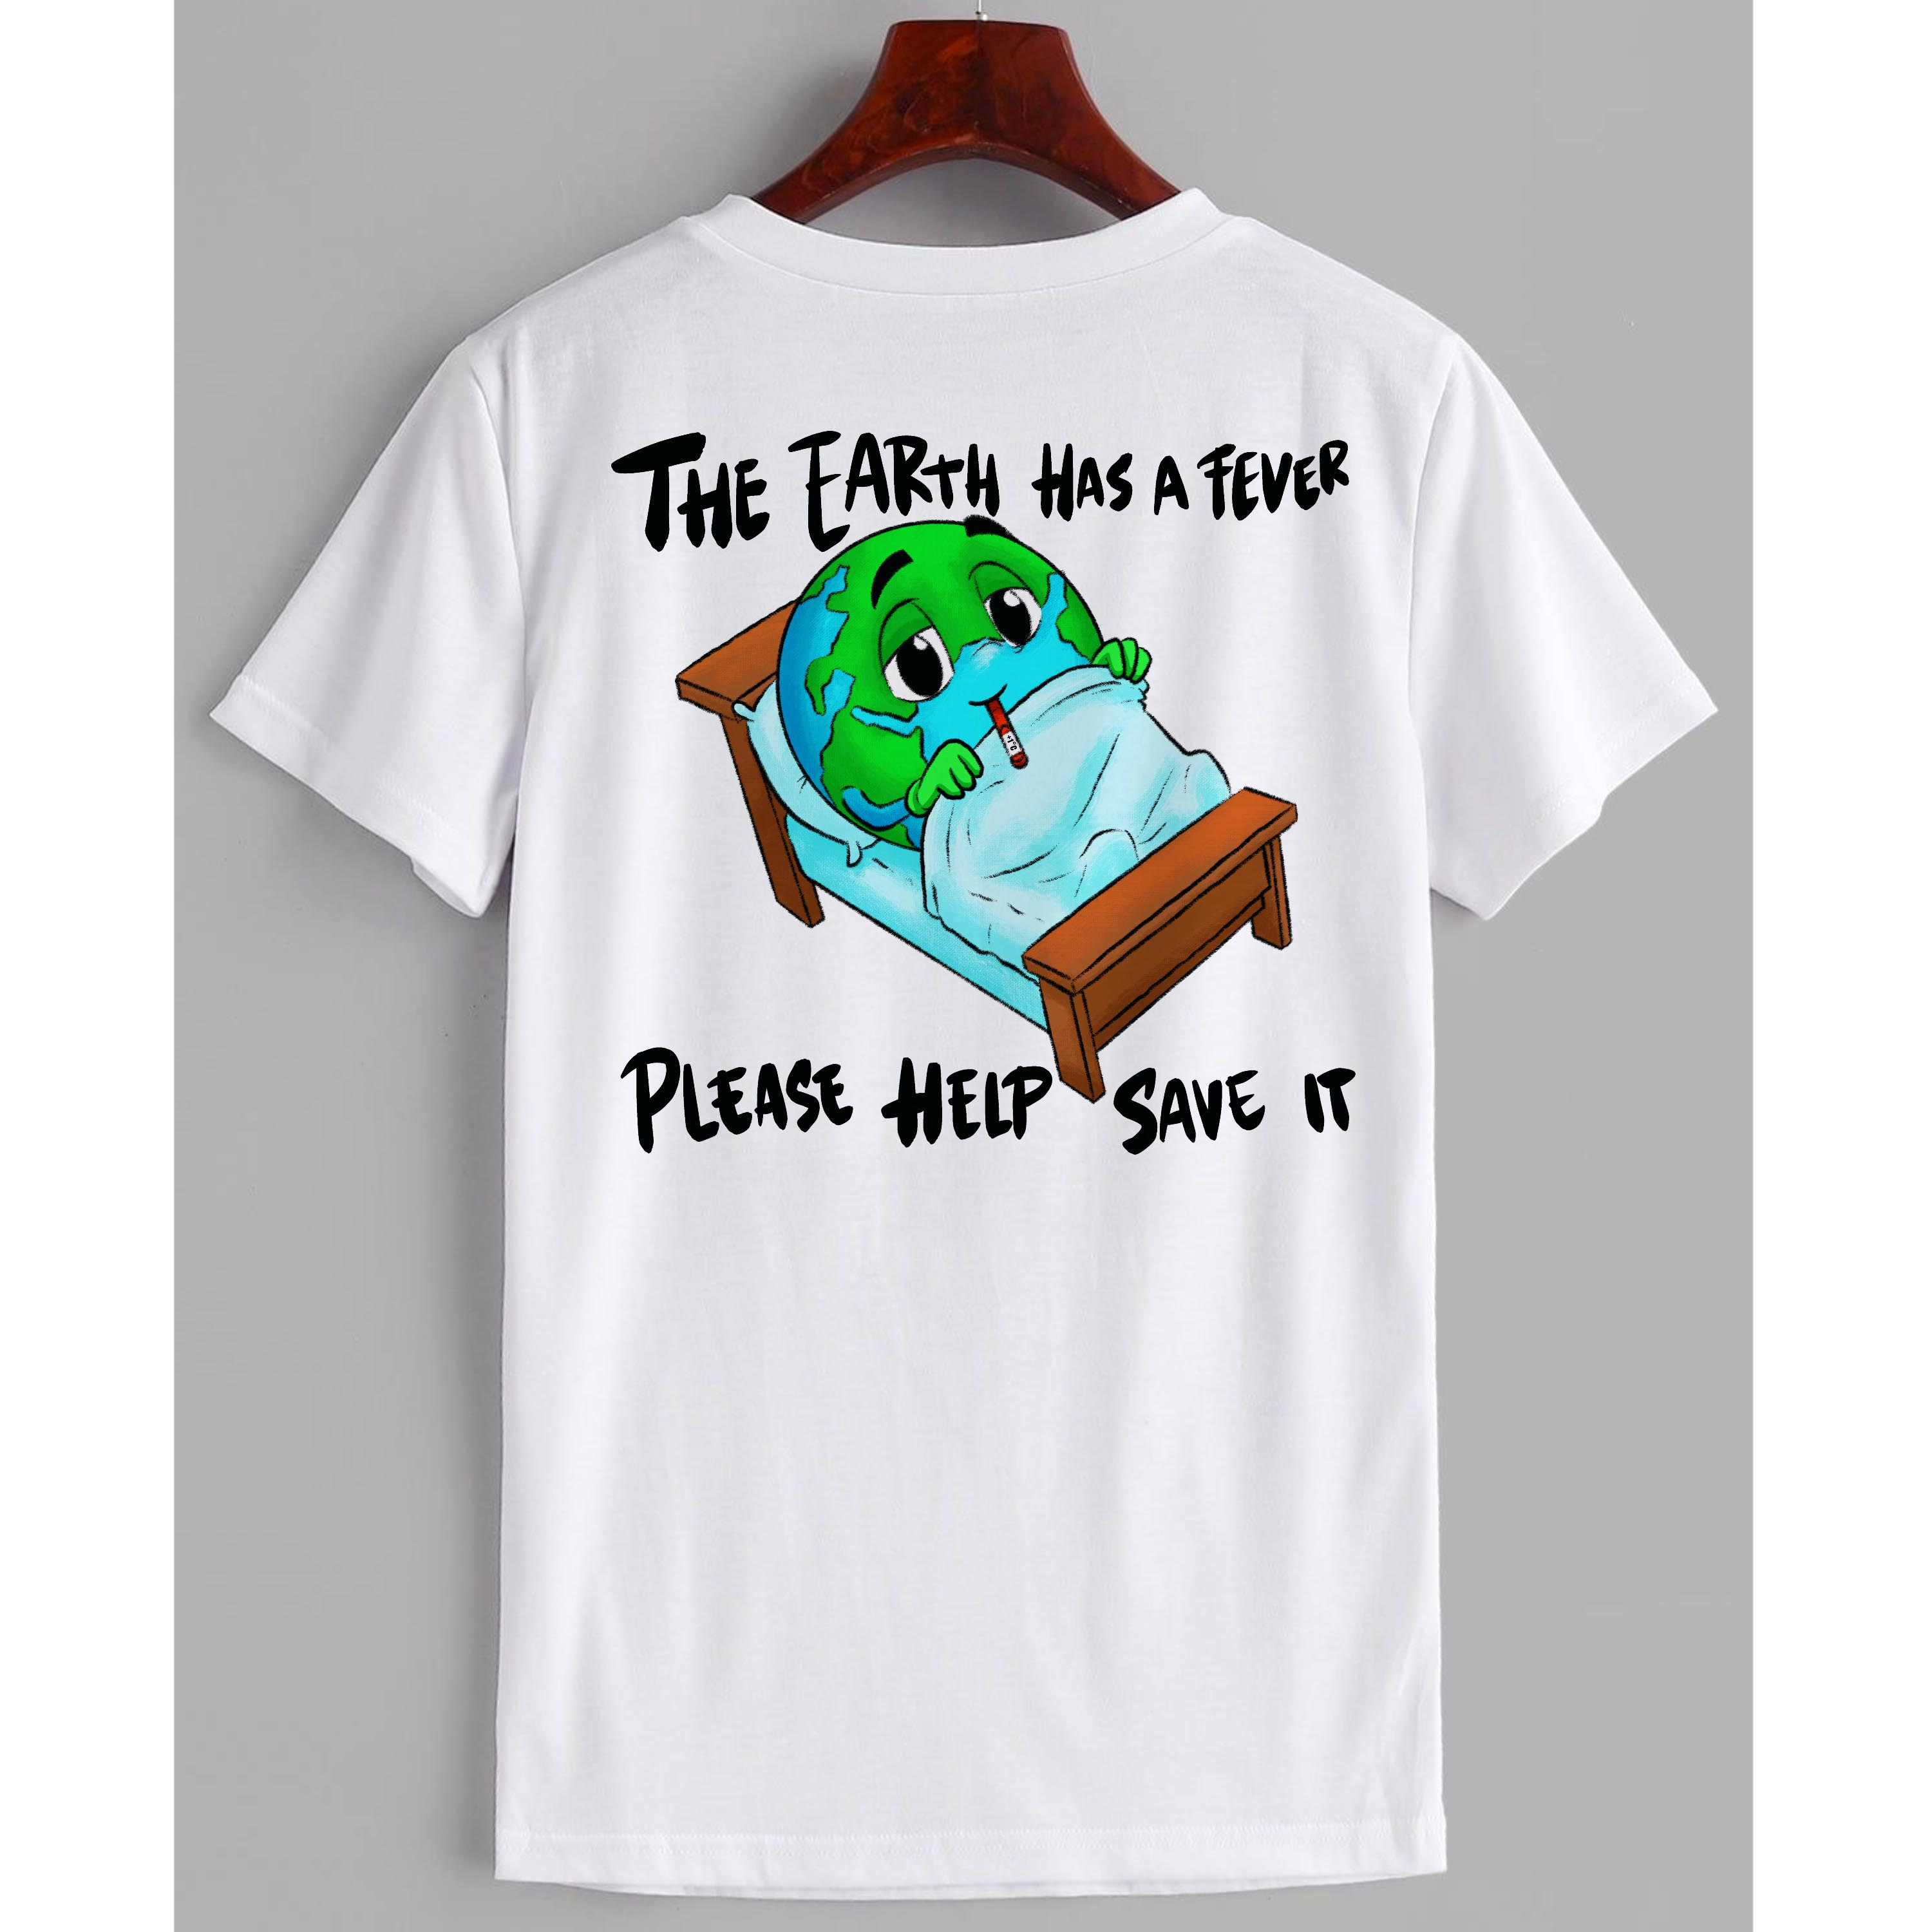 Earth has a fever t-shirt